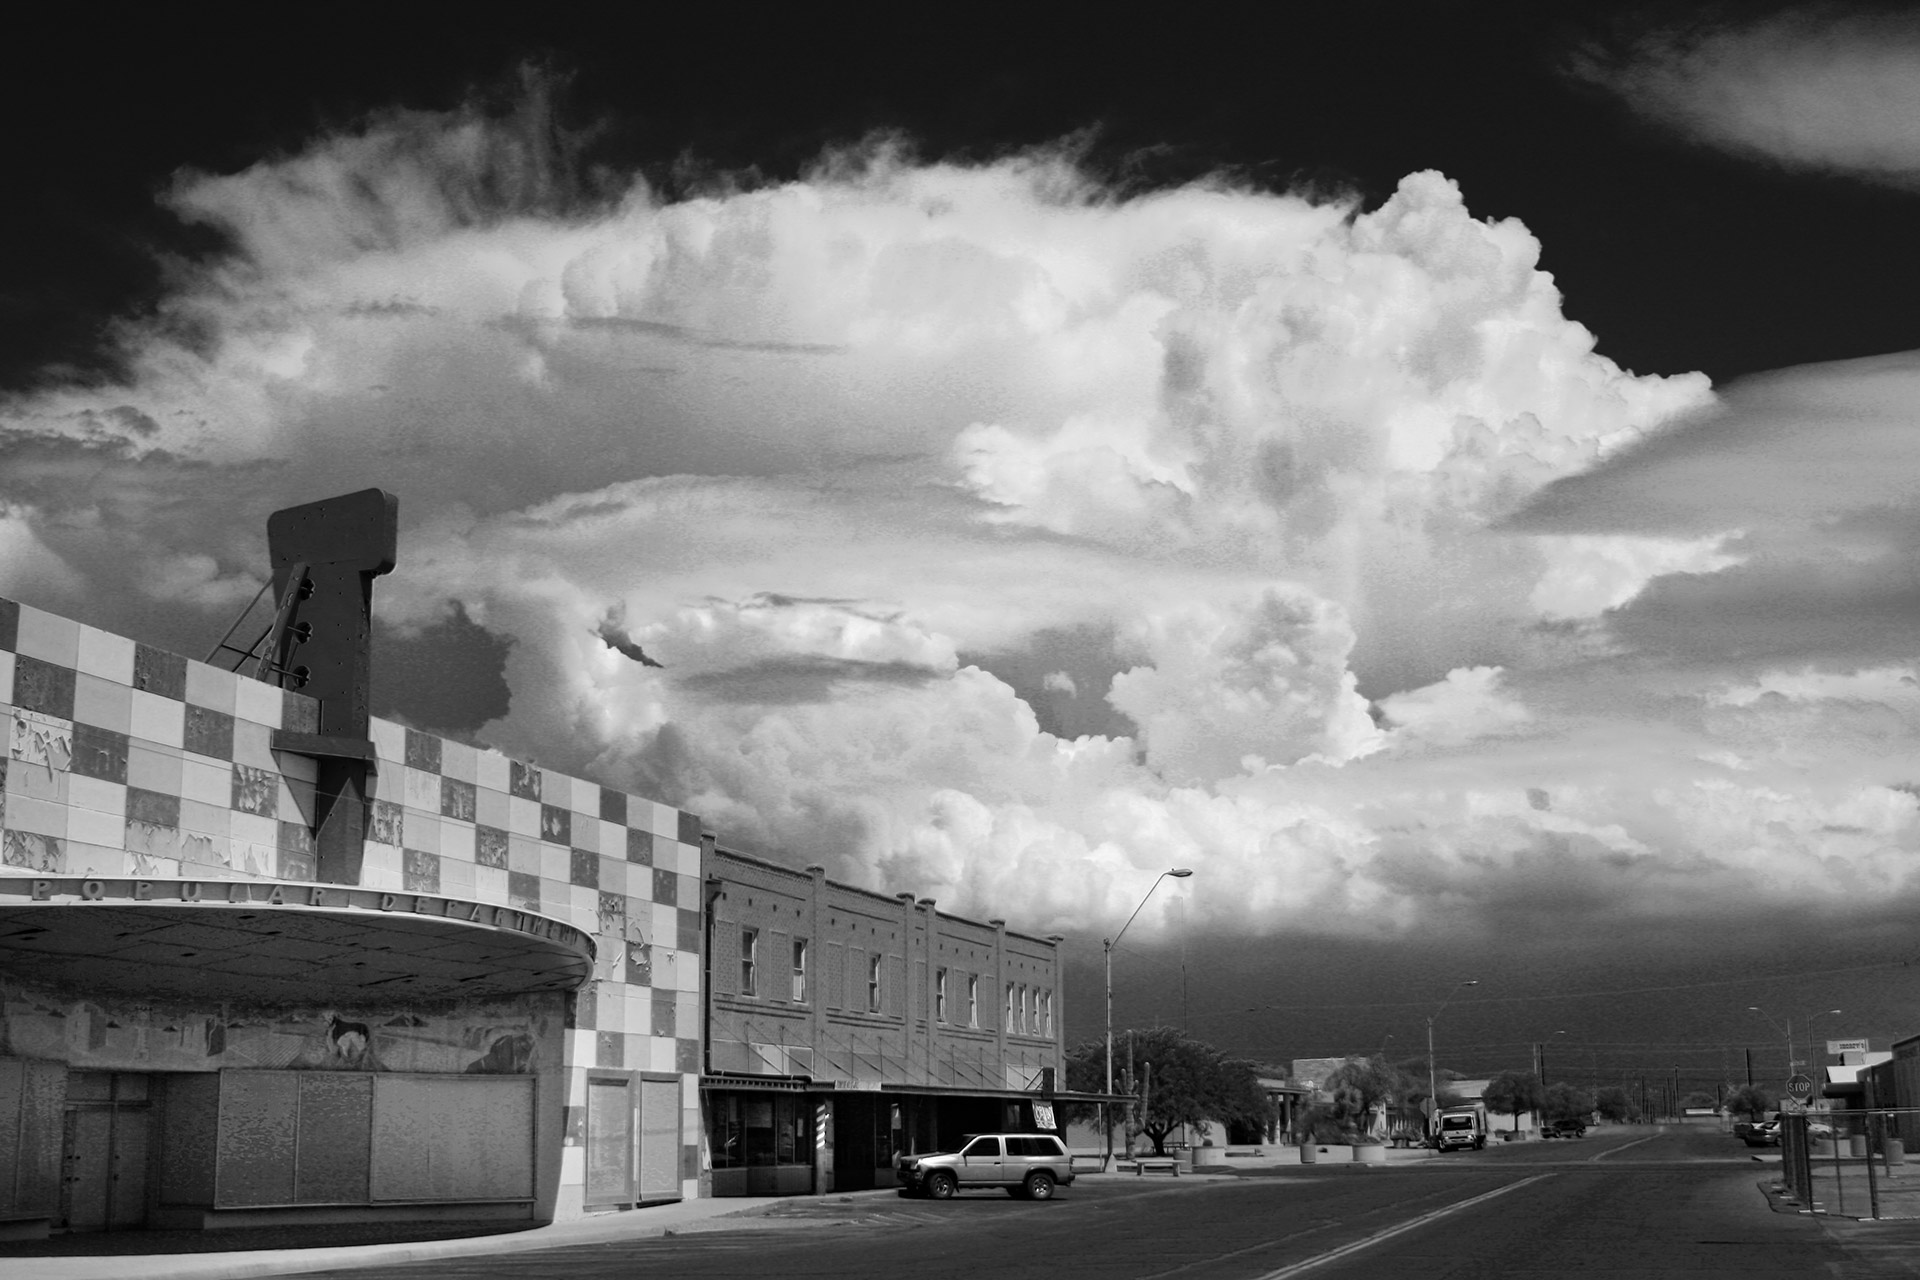 A monsoon storm viewed from Central Avenue in Coolidge, Arizona